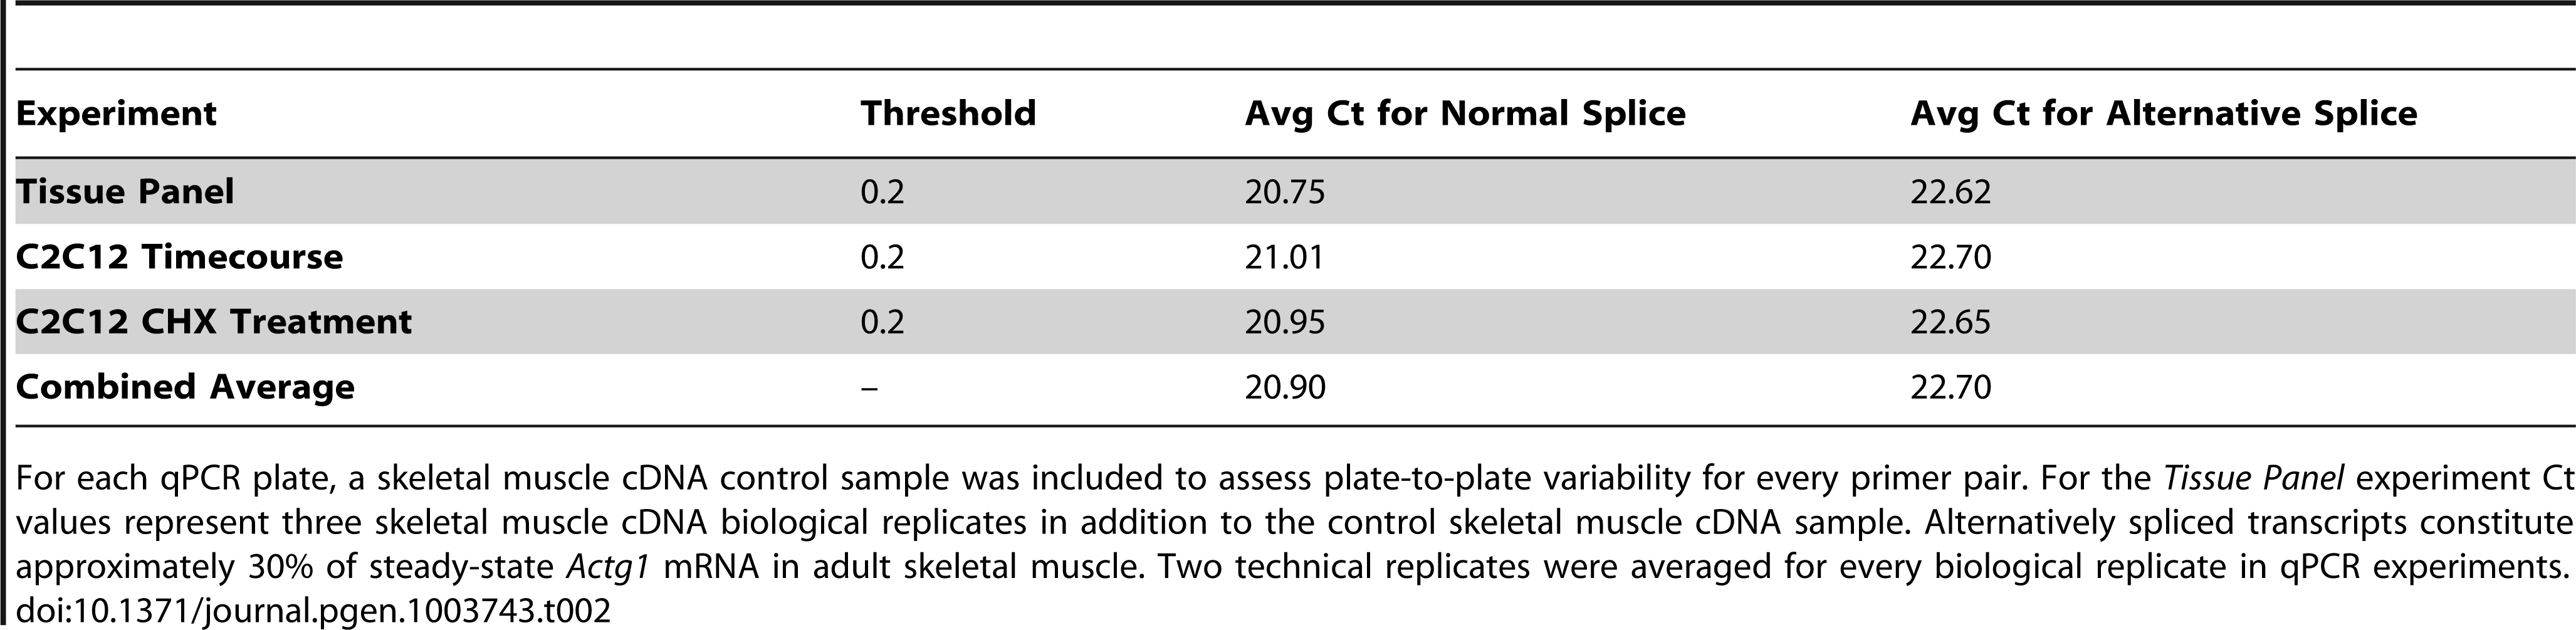 Ct values for a skeletal muscle cDNA control demonstrate no plate-to-plate variability.